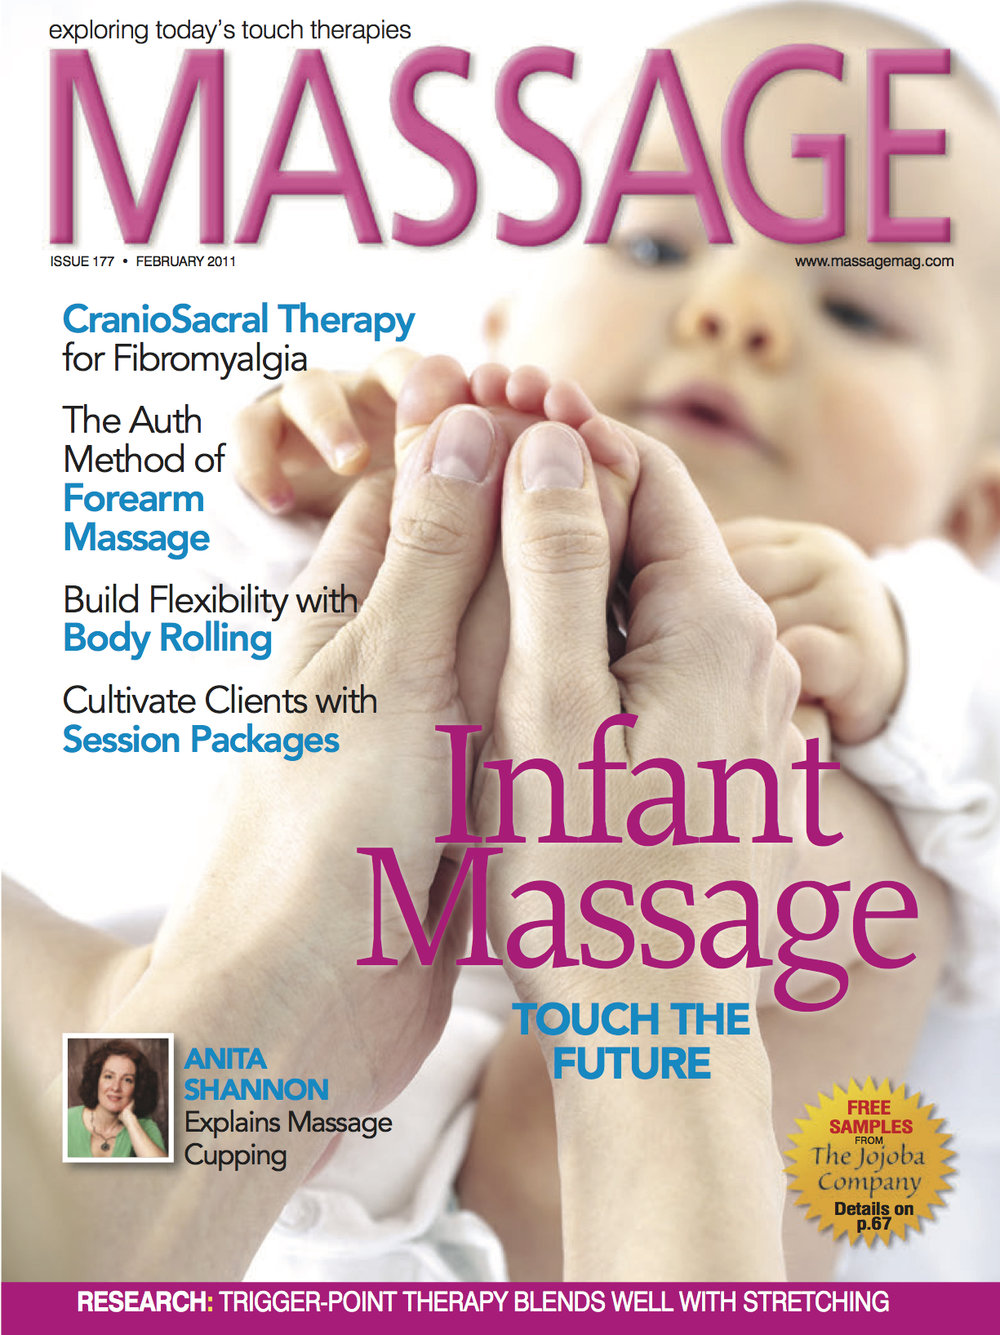 Massage Magazine - February 2011